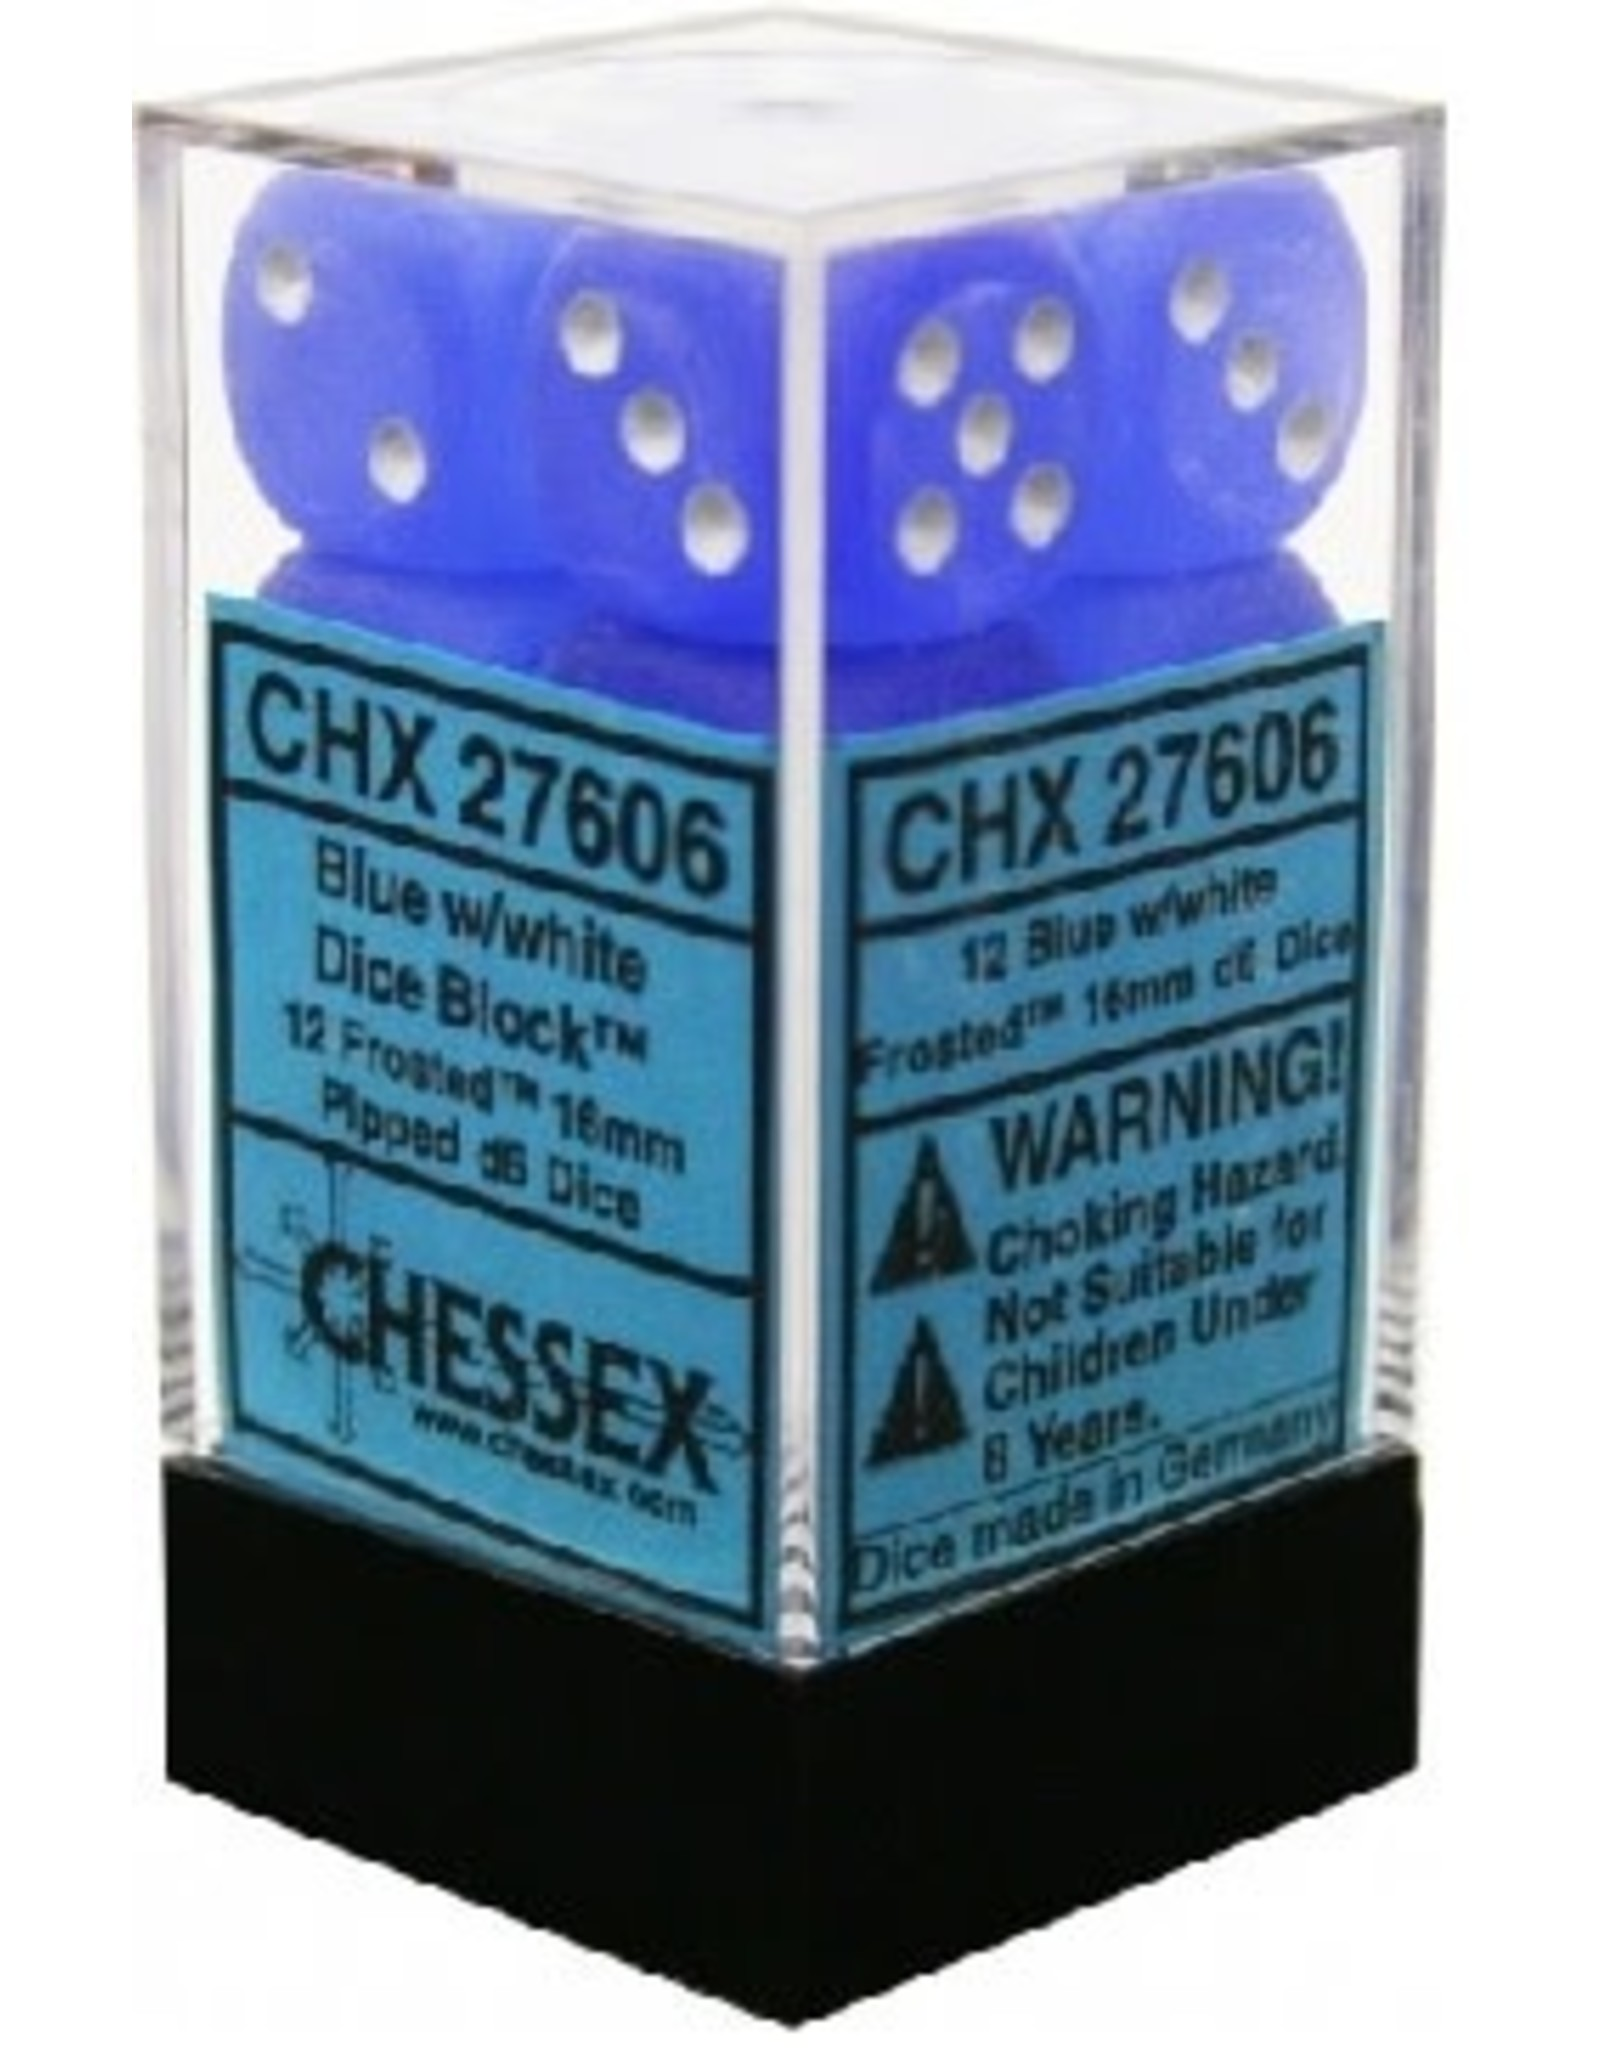 CHESSEX FROSTED 12D6 BLUE/WHITE 16MM CHX 27416